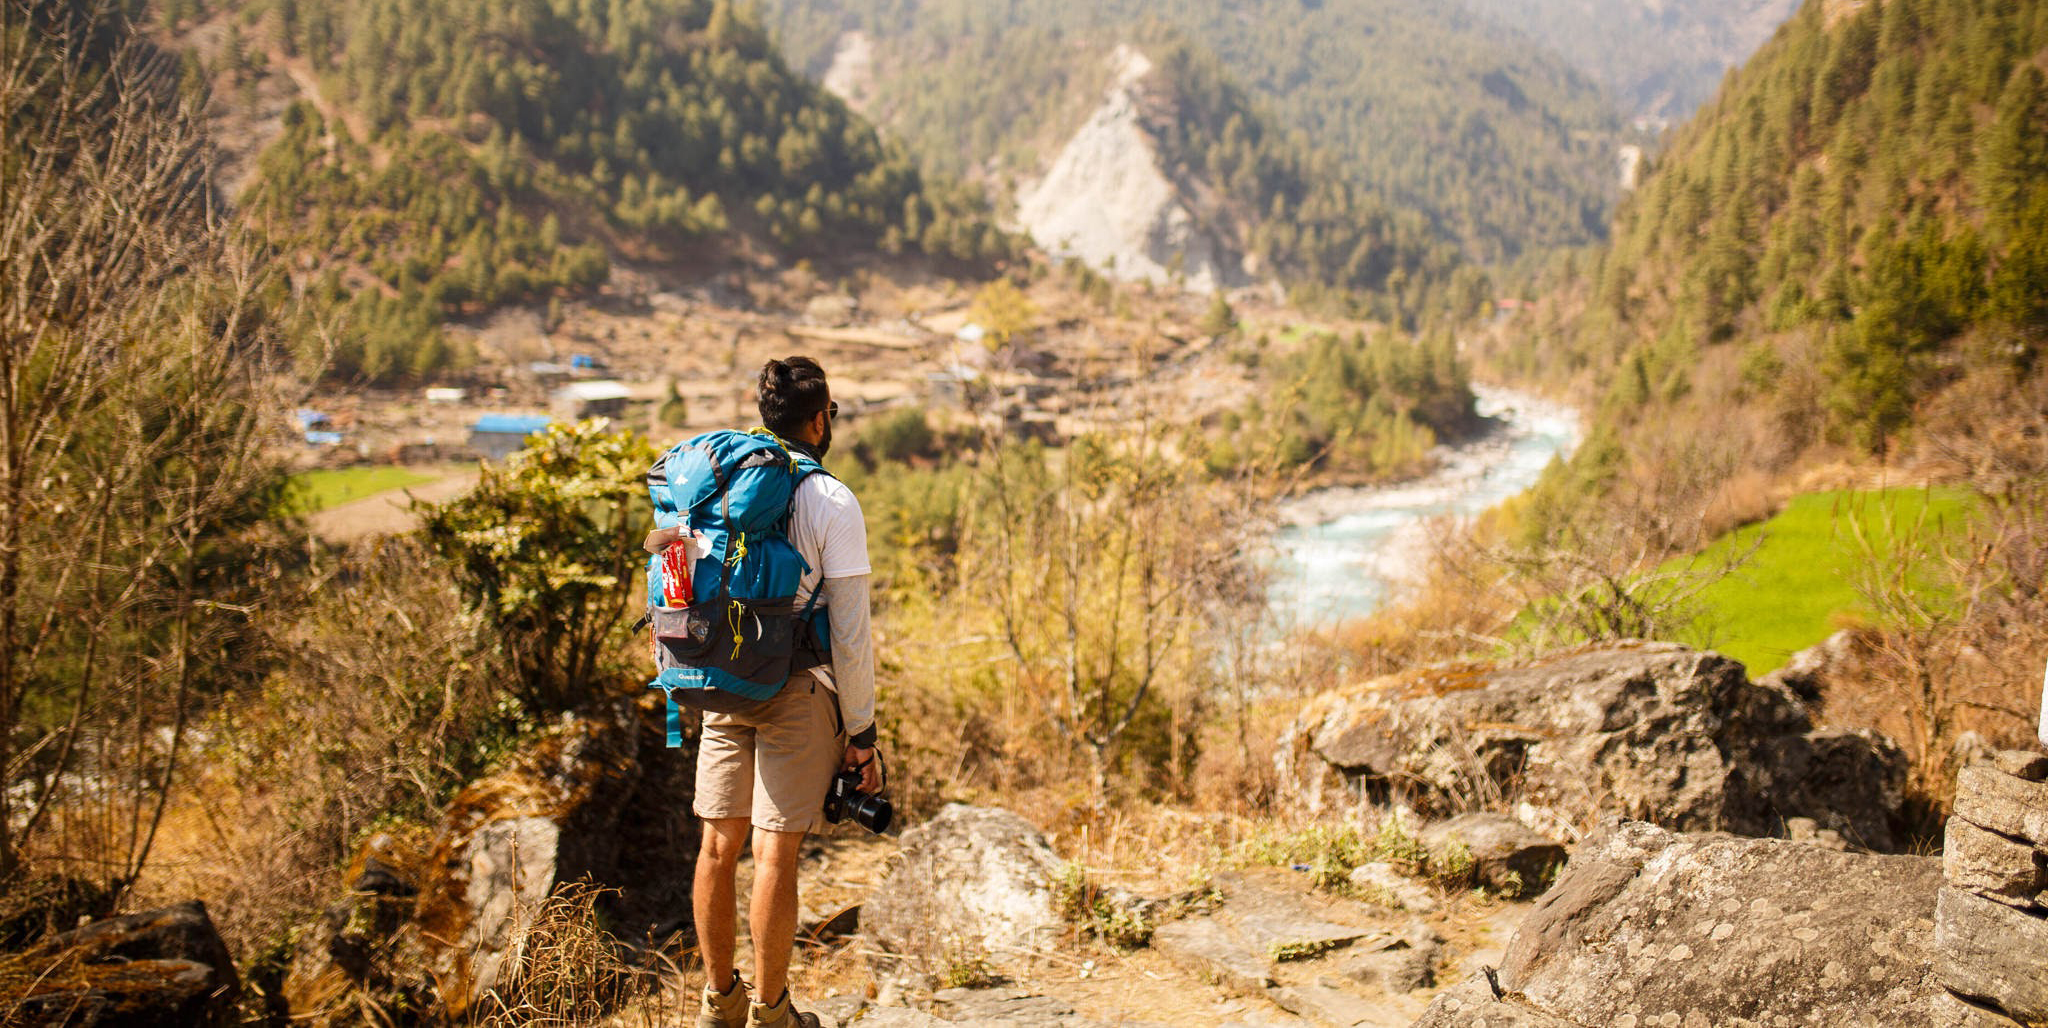 Himalayan Trek Organizers in India